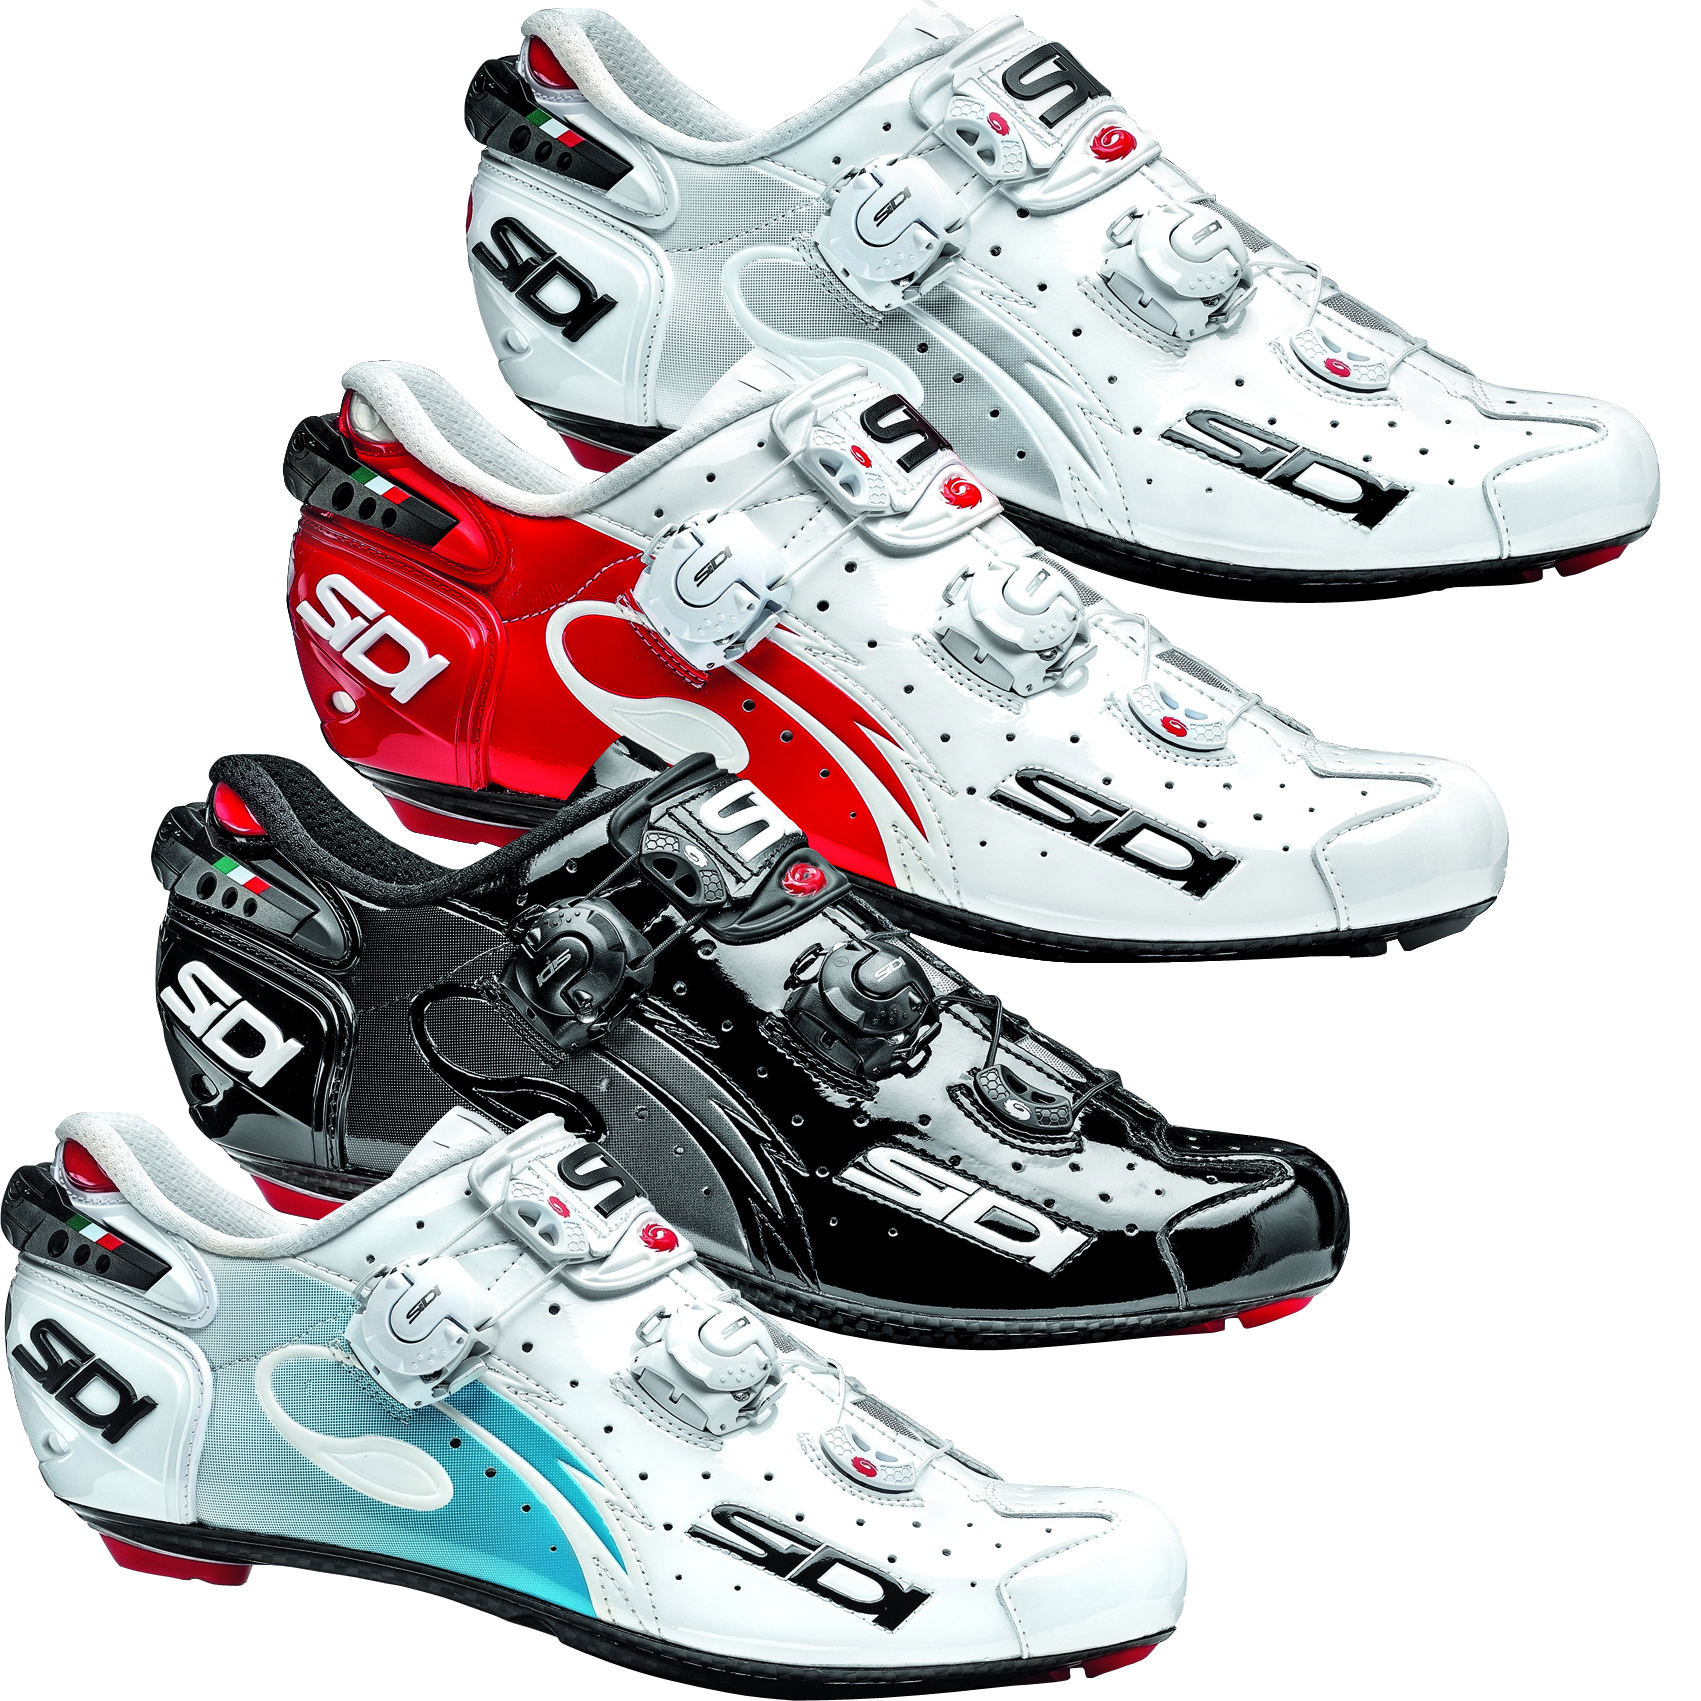 Sidi Wire Vent Carbon Review | Sidi Wire Carbon Vernice | Sidi Wire Sp Carbon